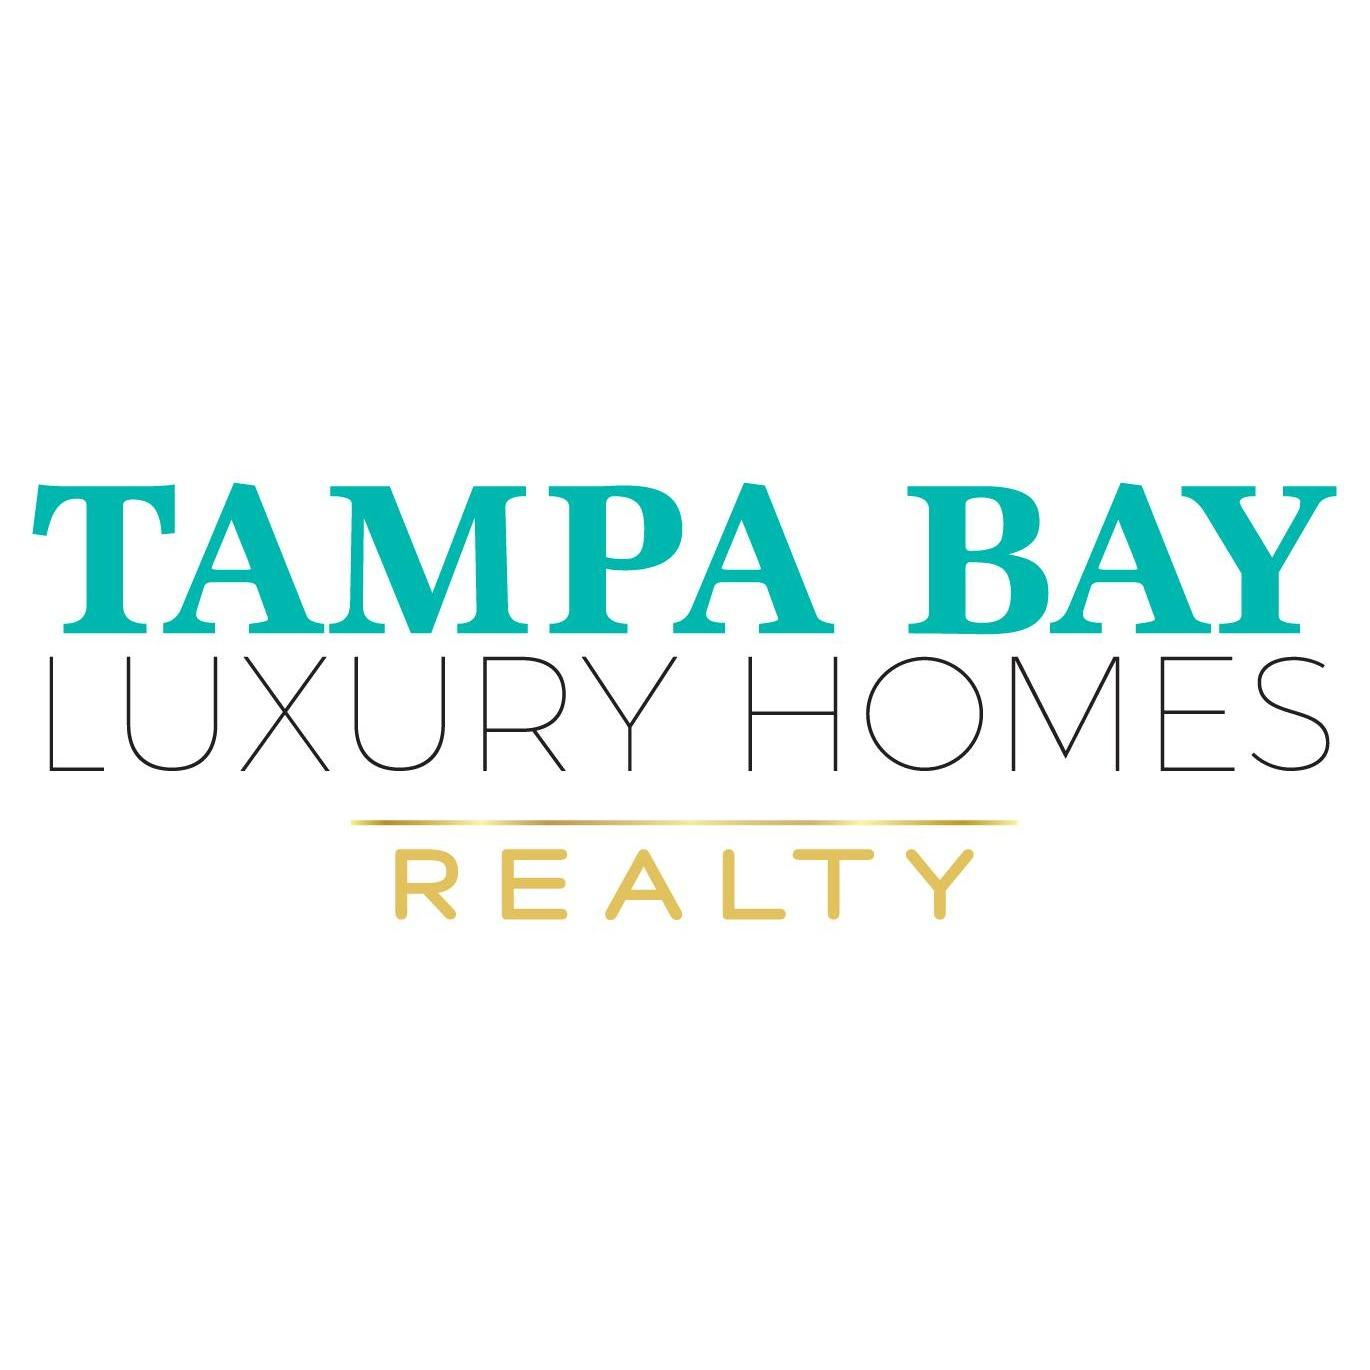 Mary Zohar - Tampa Bay Luxury Homes Realty image 1